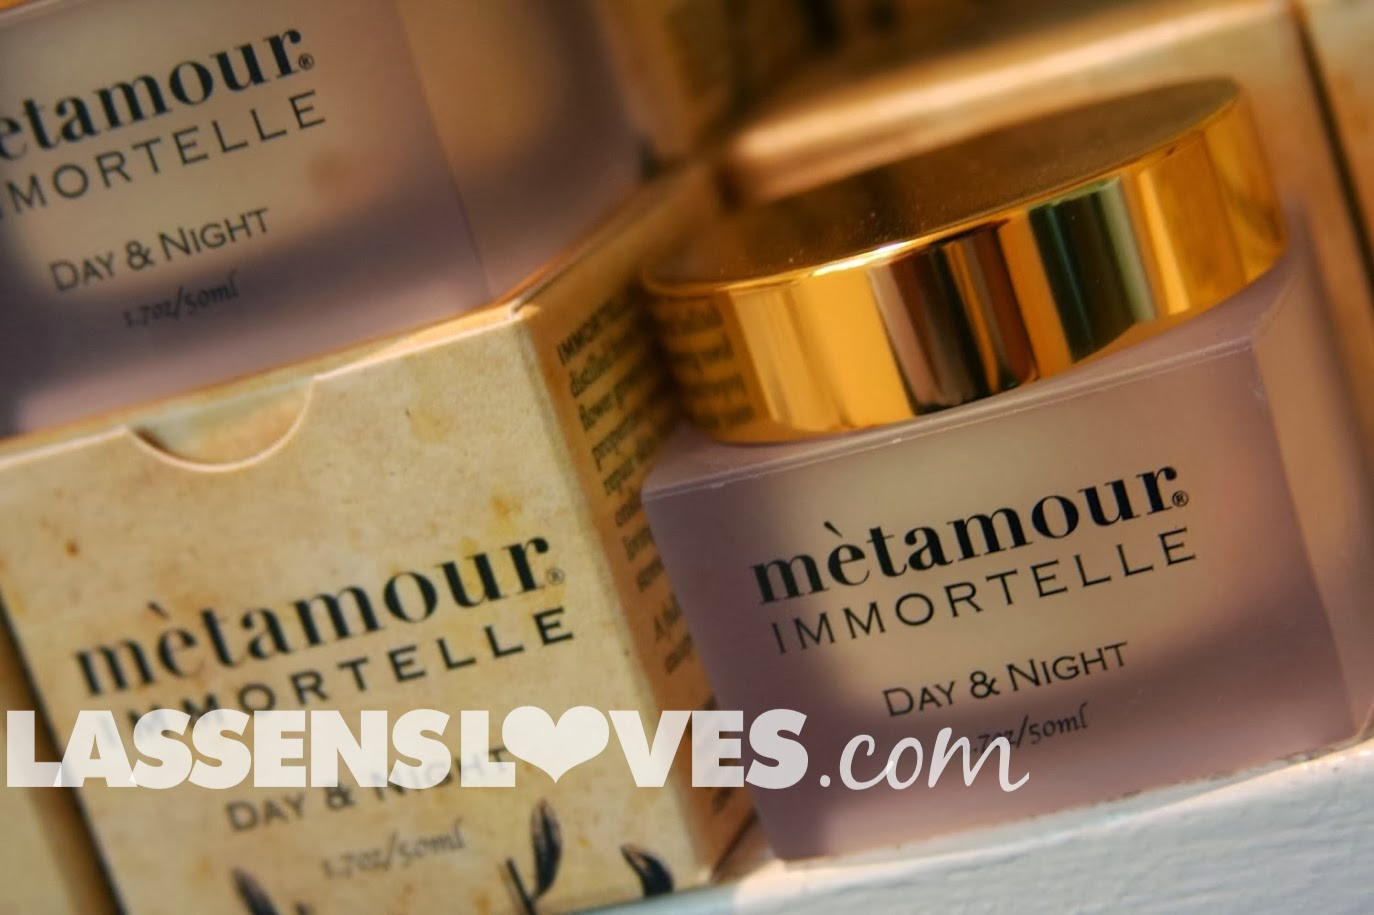 lassensloves.com, Lassen's, metamour+immortelle, natural+skin+care, Day+night+cream